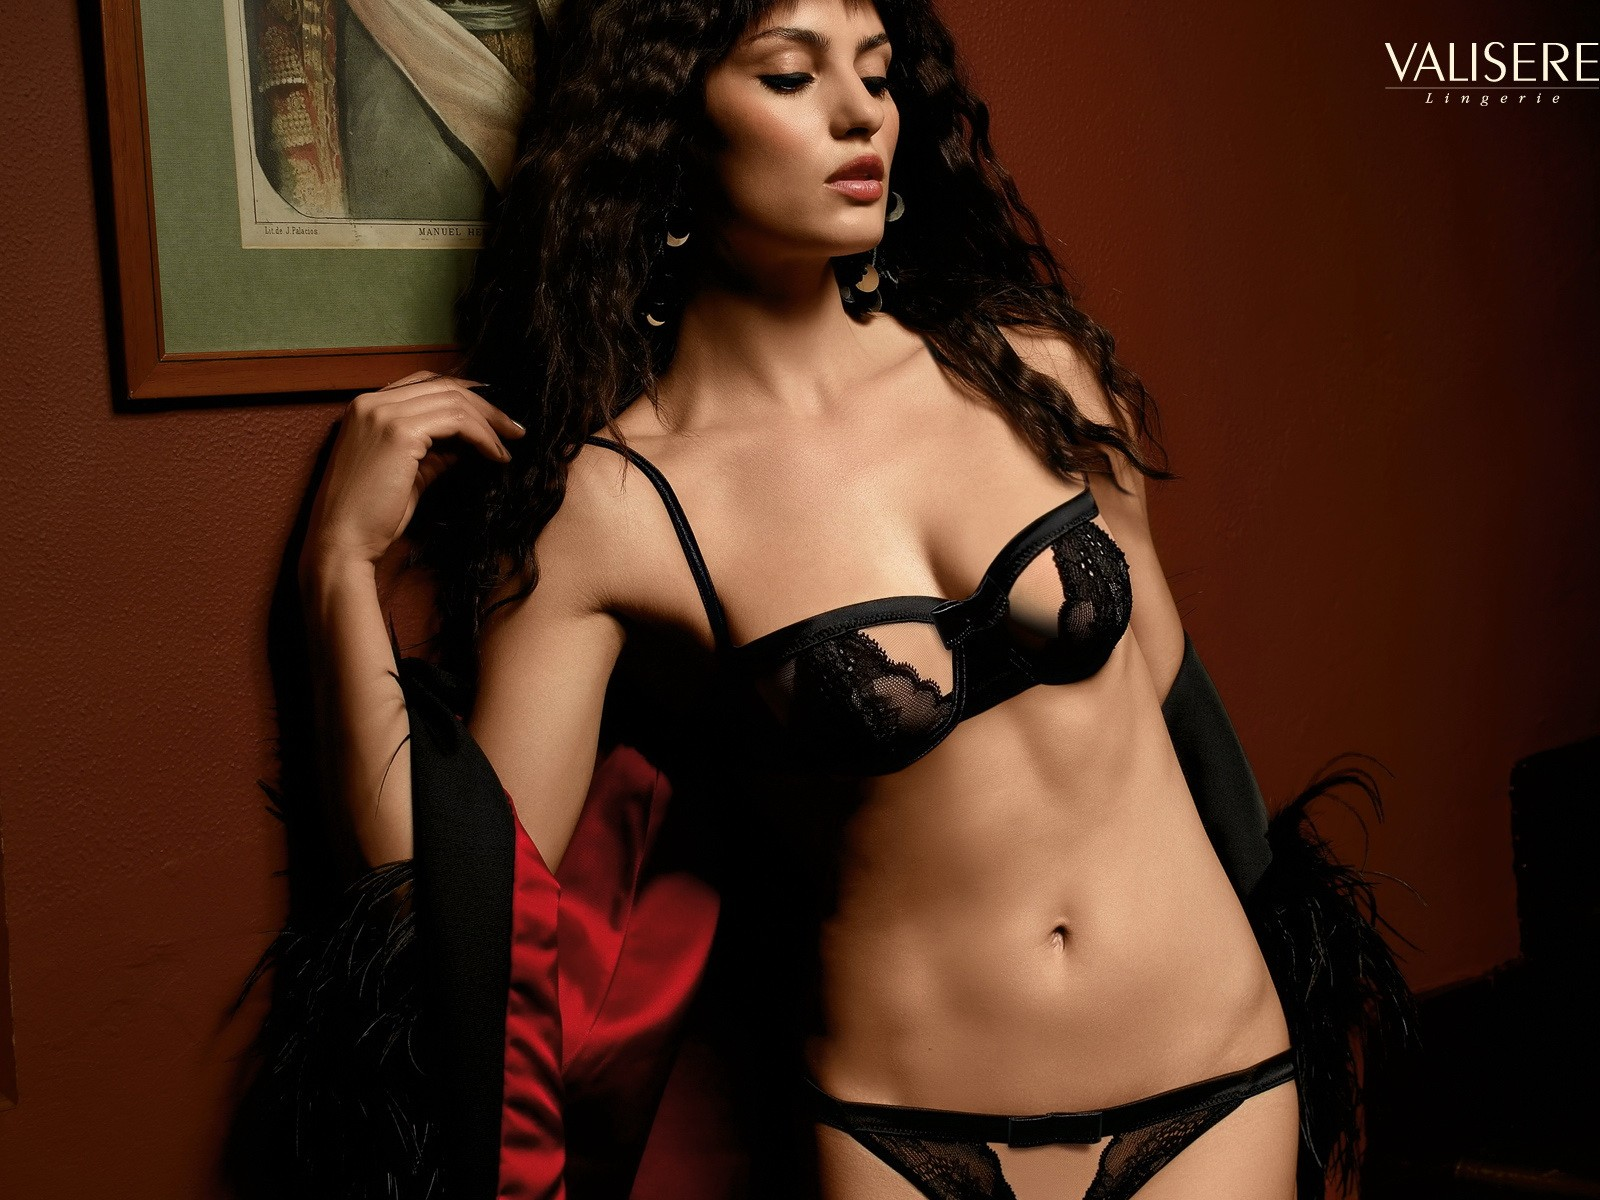 girl model lingerie bra Sexy Catrinel Menghia HD Wallpaper